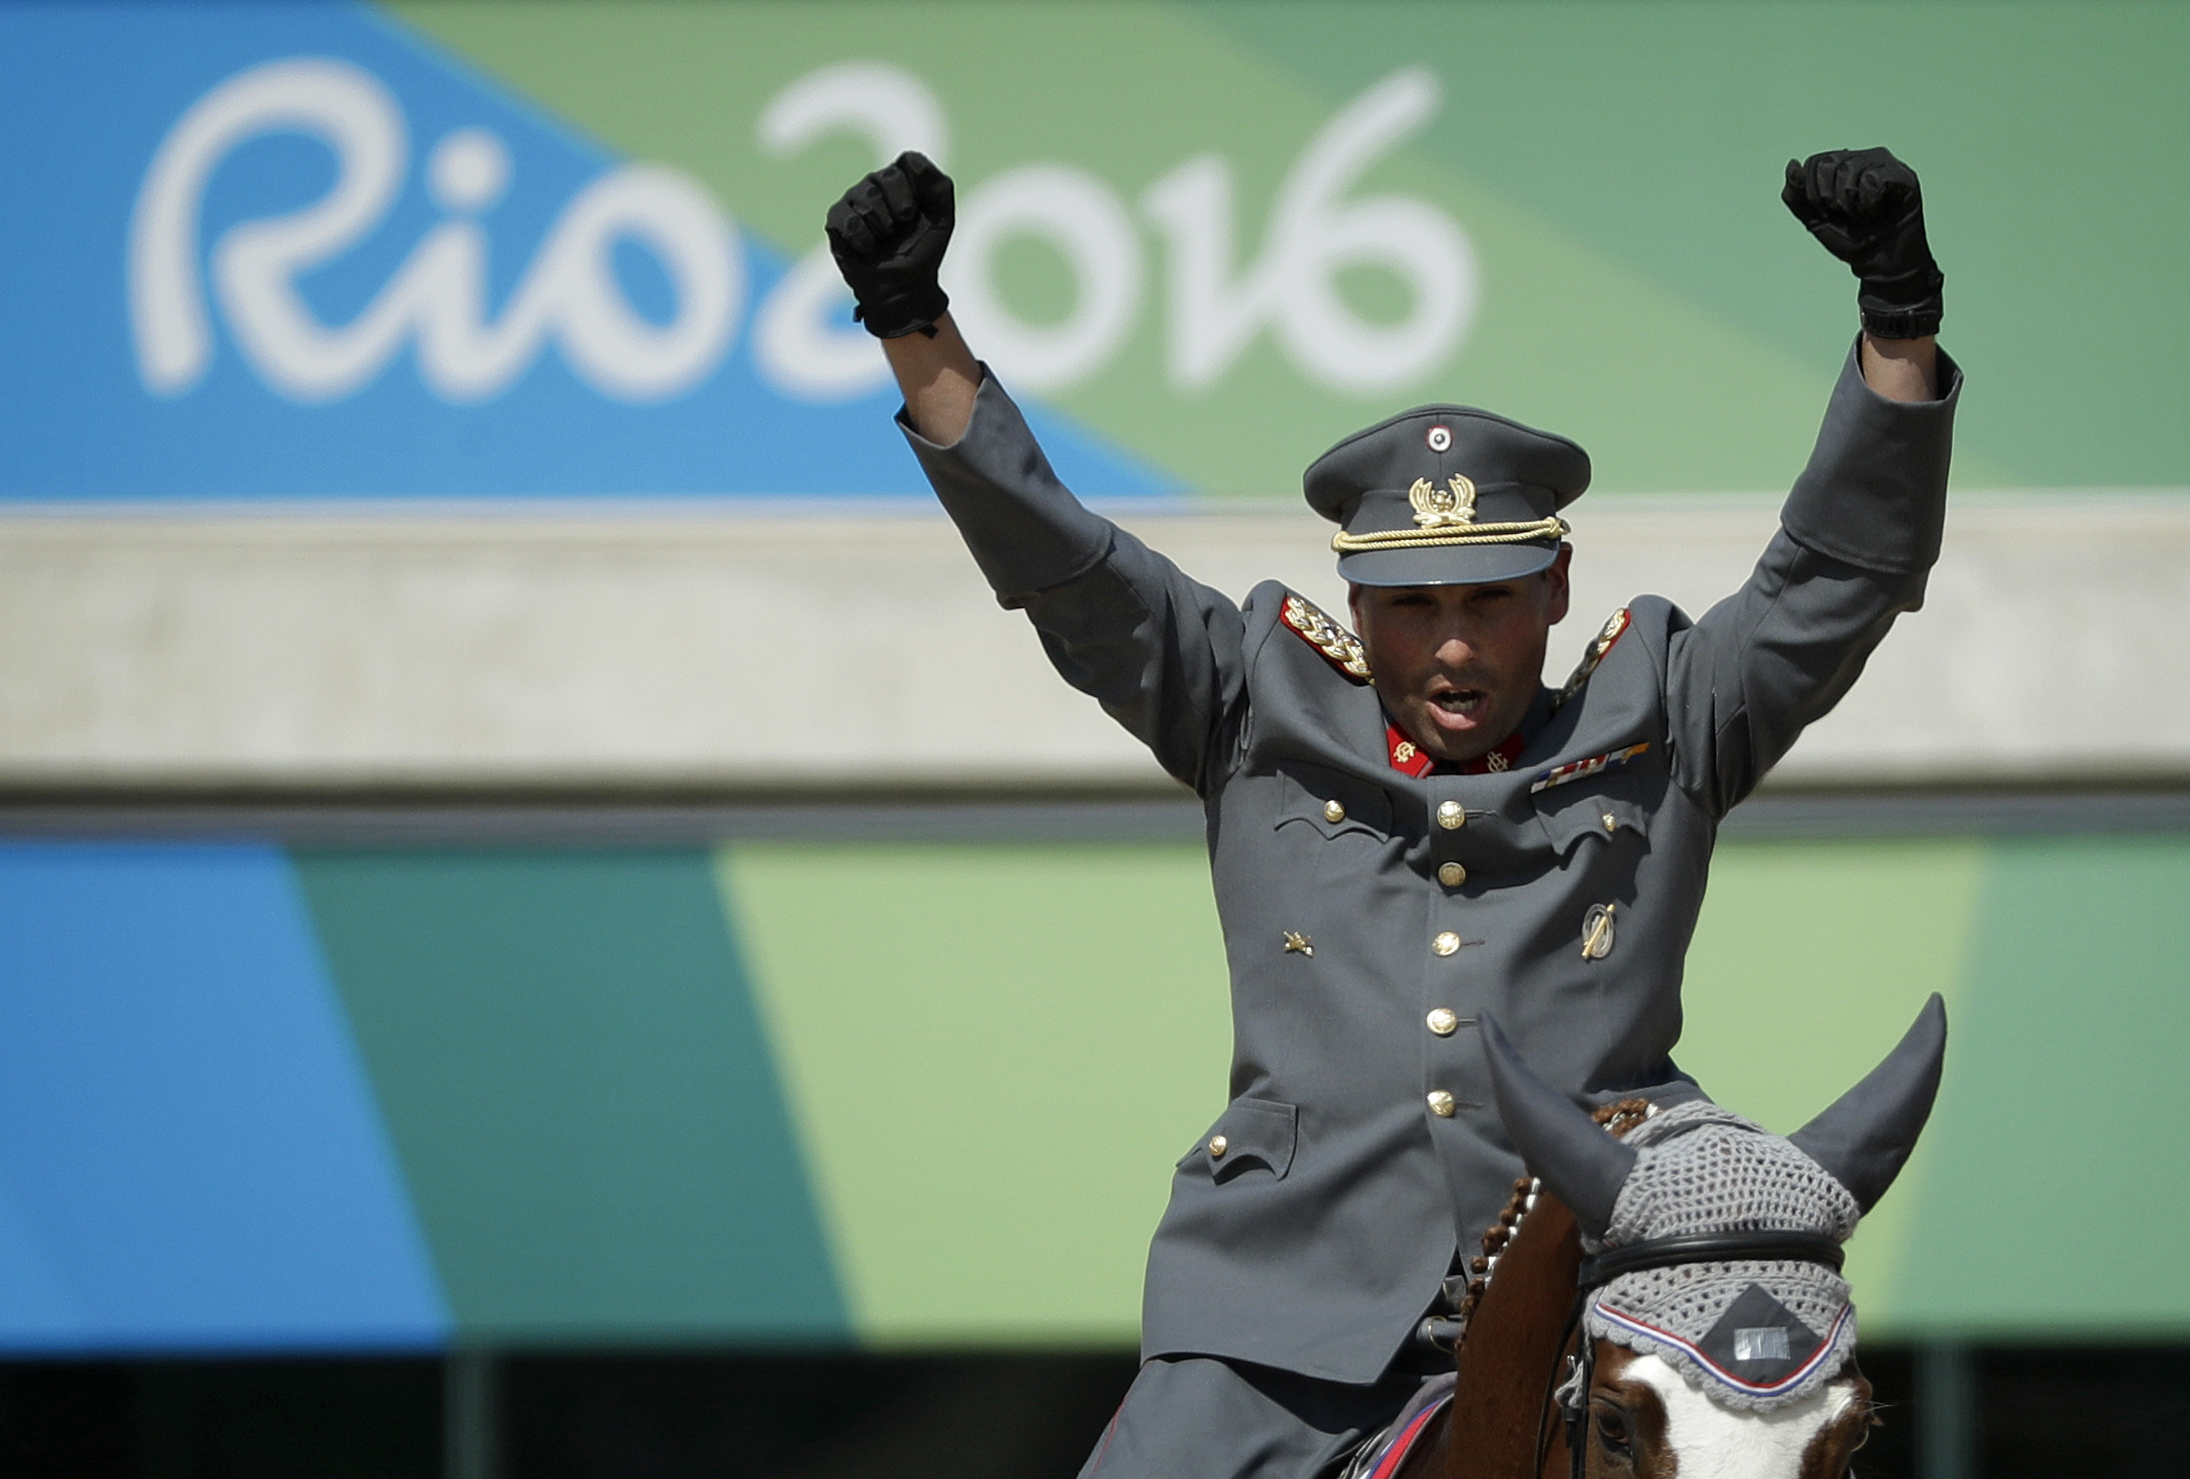 Carlos Lobos Munoz, of Chile, reacts while riding Ranco after competing in the equestrian eventing dressage competition at the 2016 Summer Olympics in Rio de Janeiro, Brazil, Saturday, Aug. 6, 2016. (AP Photo/John Locher)